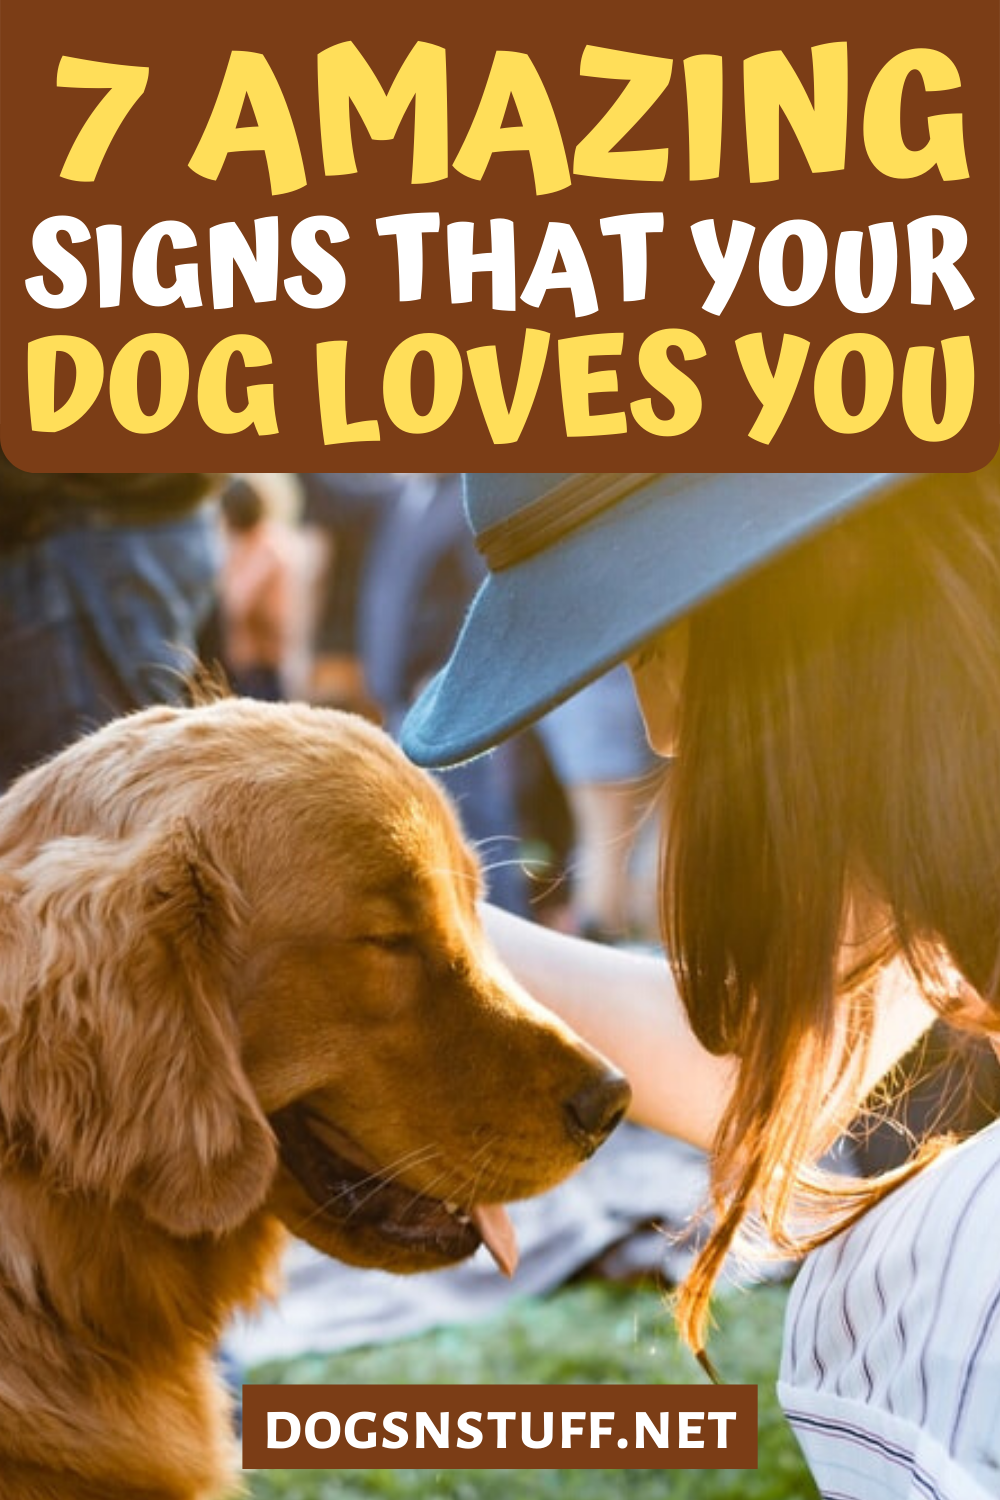 7 Amazing Signs Your Dog Loves You Dogs N' Stuff in 2020